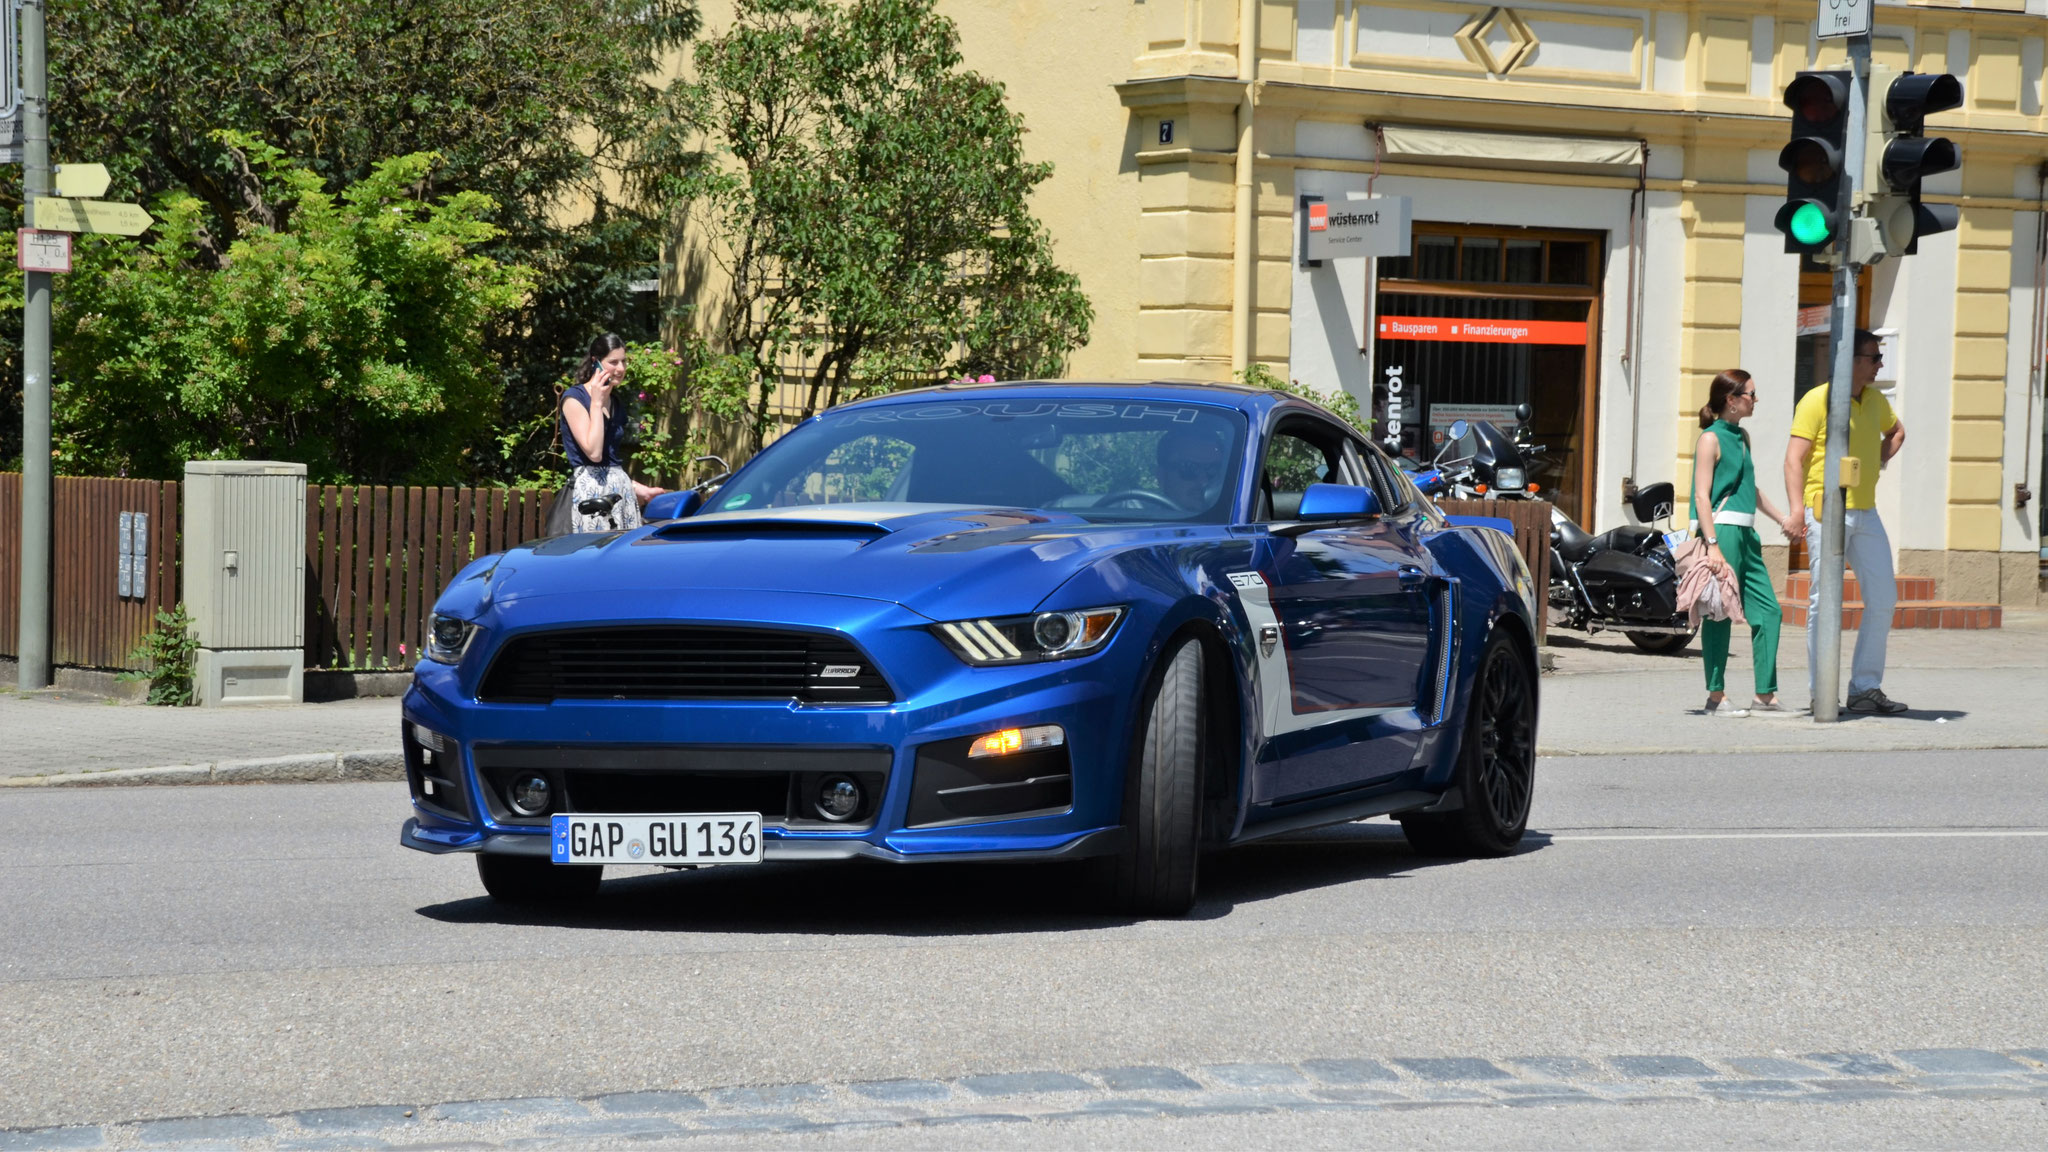 Ford Mustang Rush Warrior 670 - GAP-GU-136